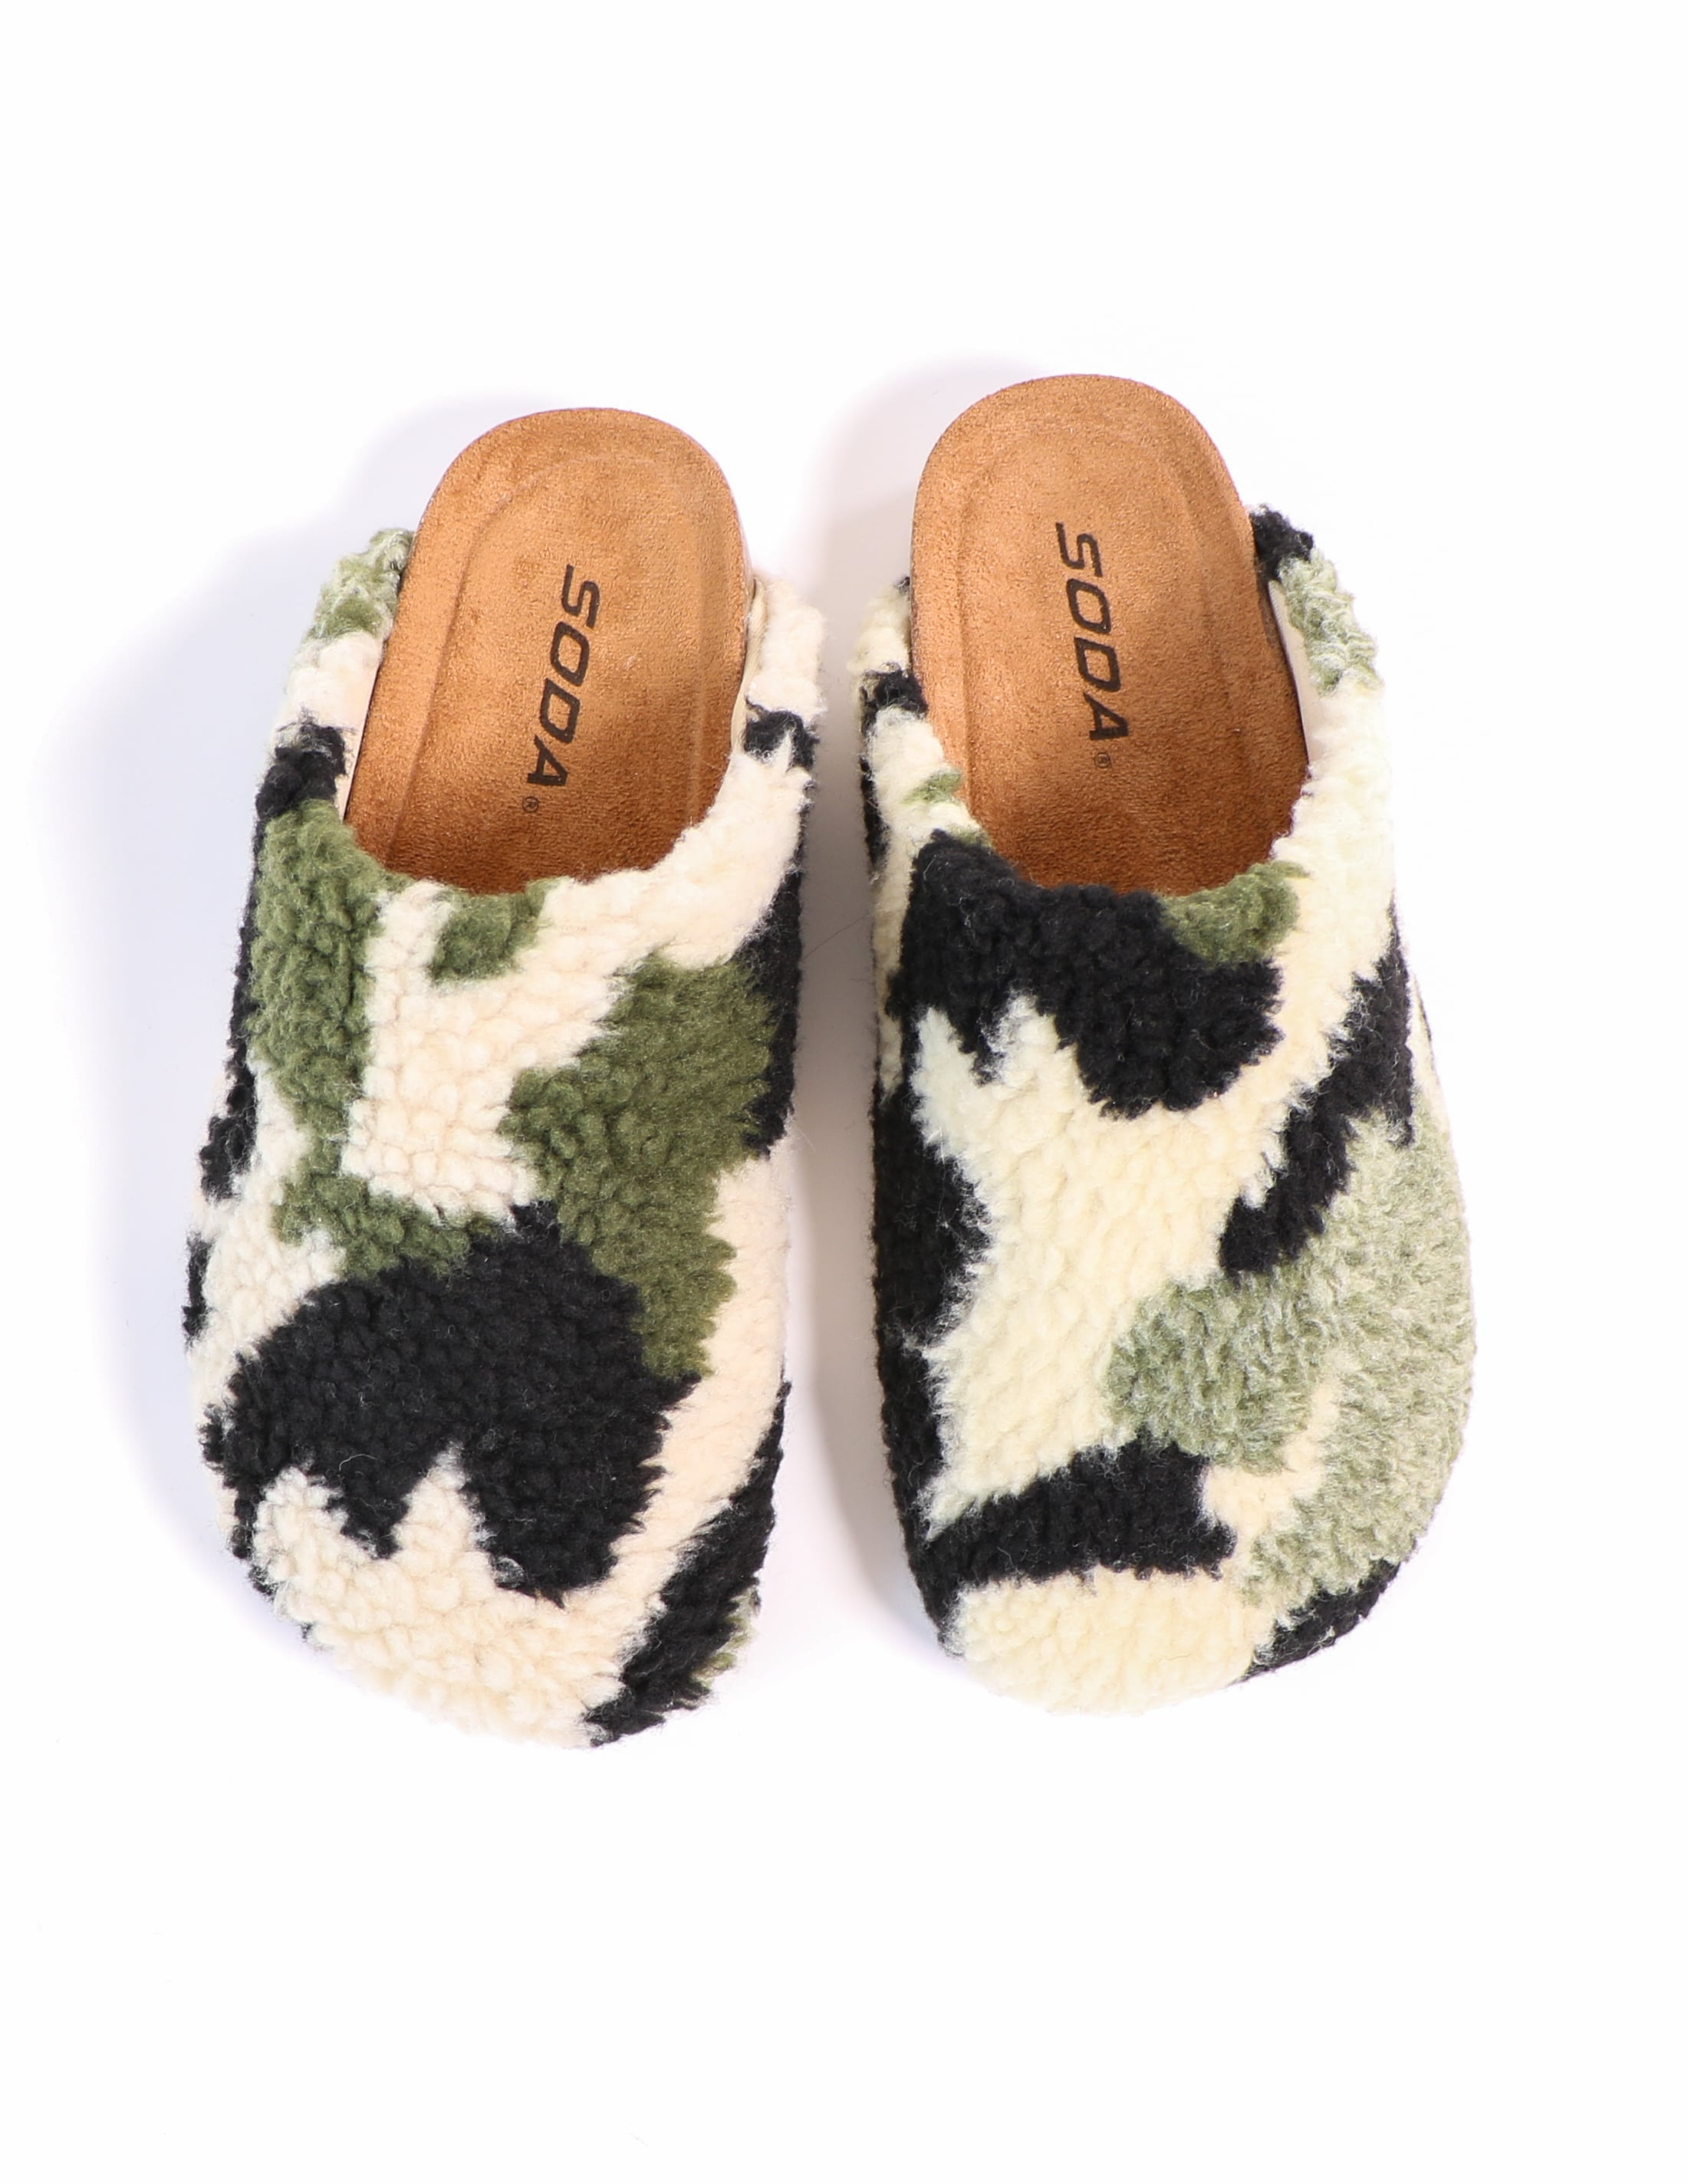 Top view of the i'm teddy to go camo slip on clogs - elle bleu shoes